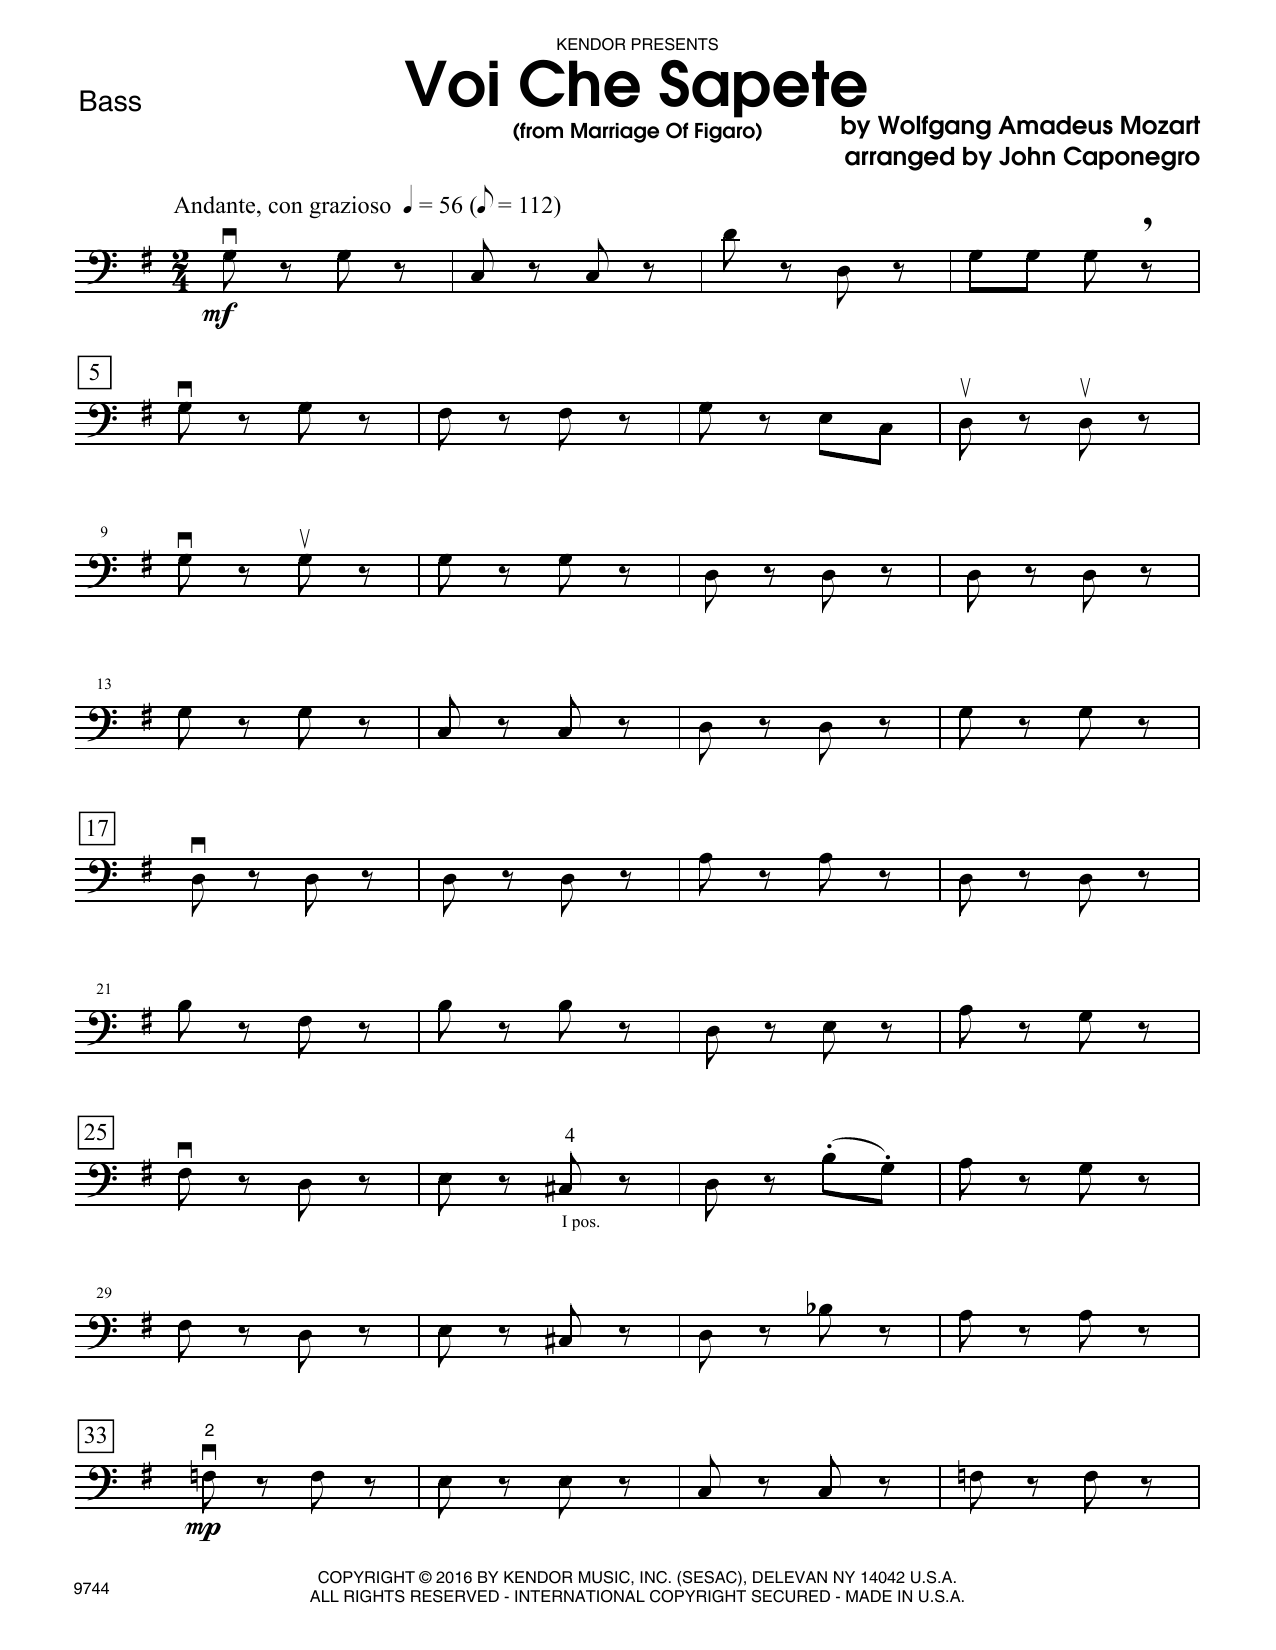 Voi Che Sapete (from Marriage Of Figaro) - Bass Sheet Music